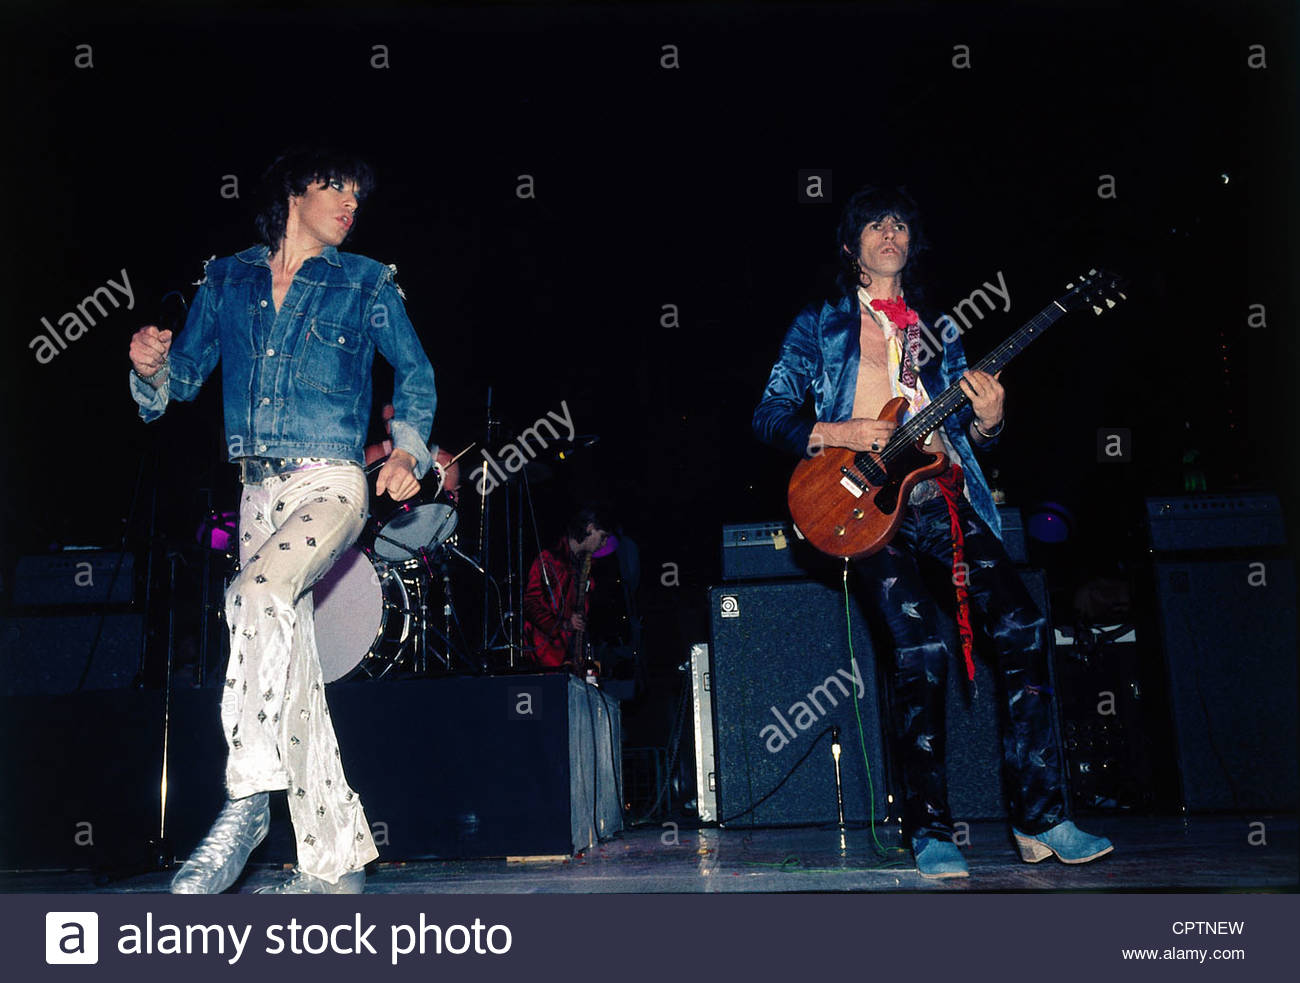 Rolling Stones, British rock group, Mick Jagger and Keith Richards during a concert, 1970s, jeans jacket, musicians, - Stock Image